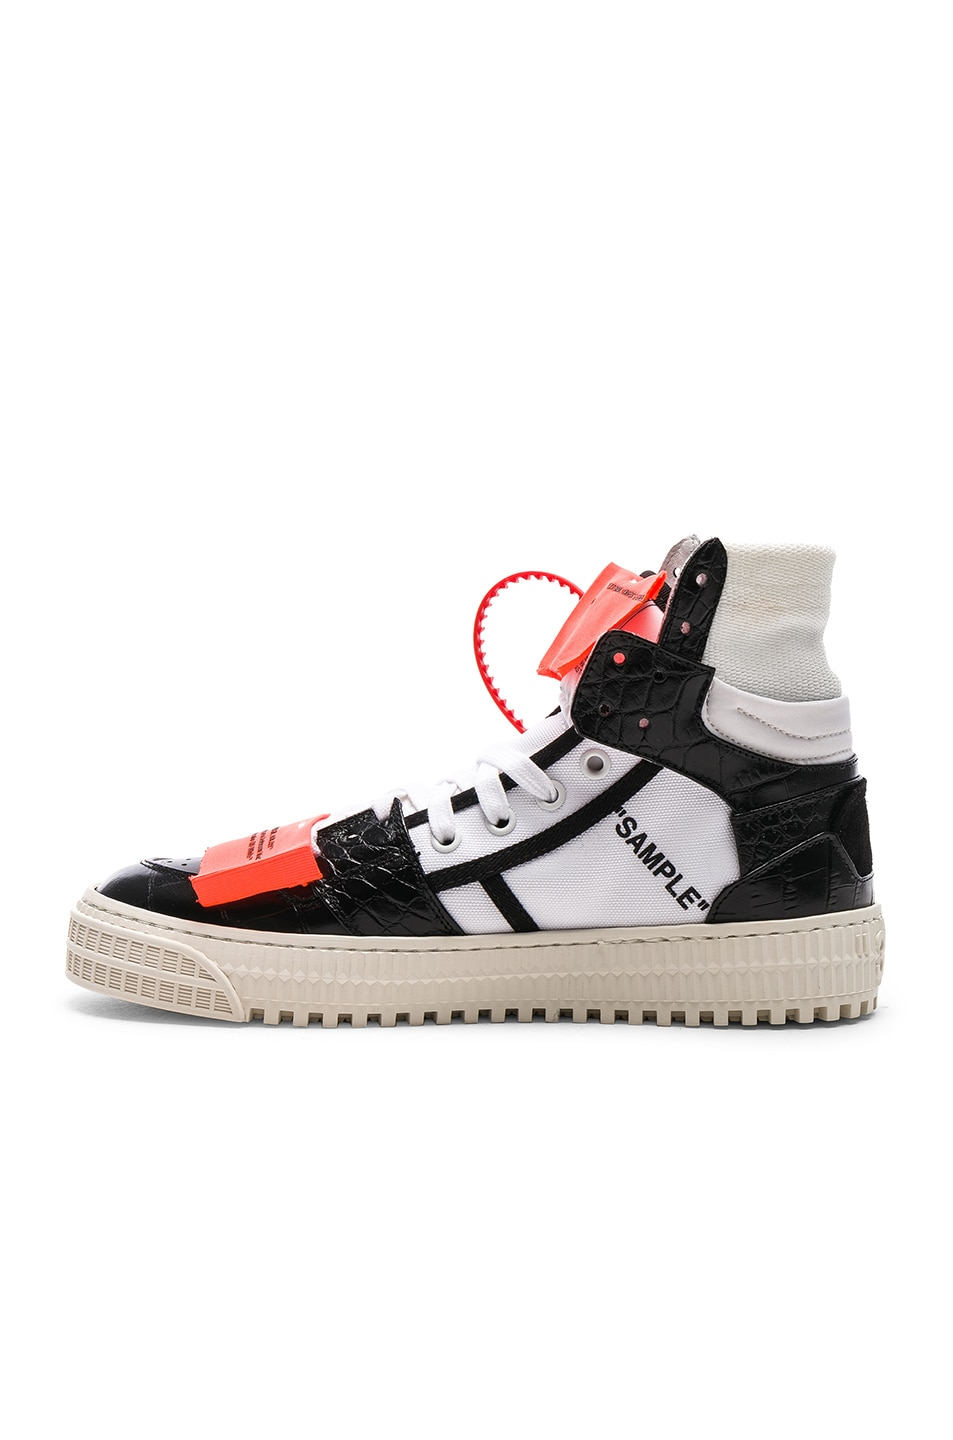 Image 5 of OFF-WHITE Low 3.0 Sneakers in Black